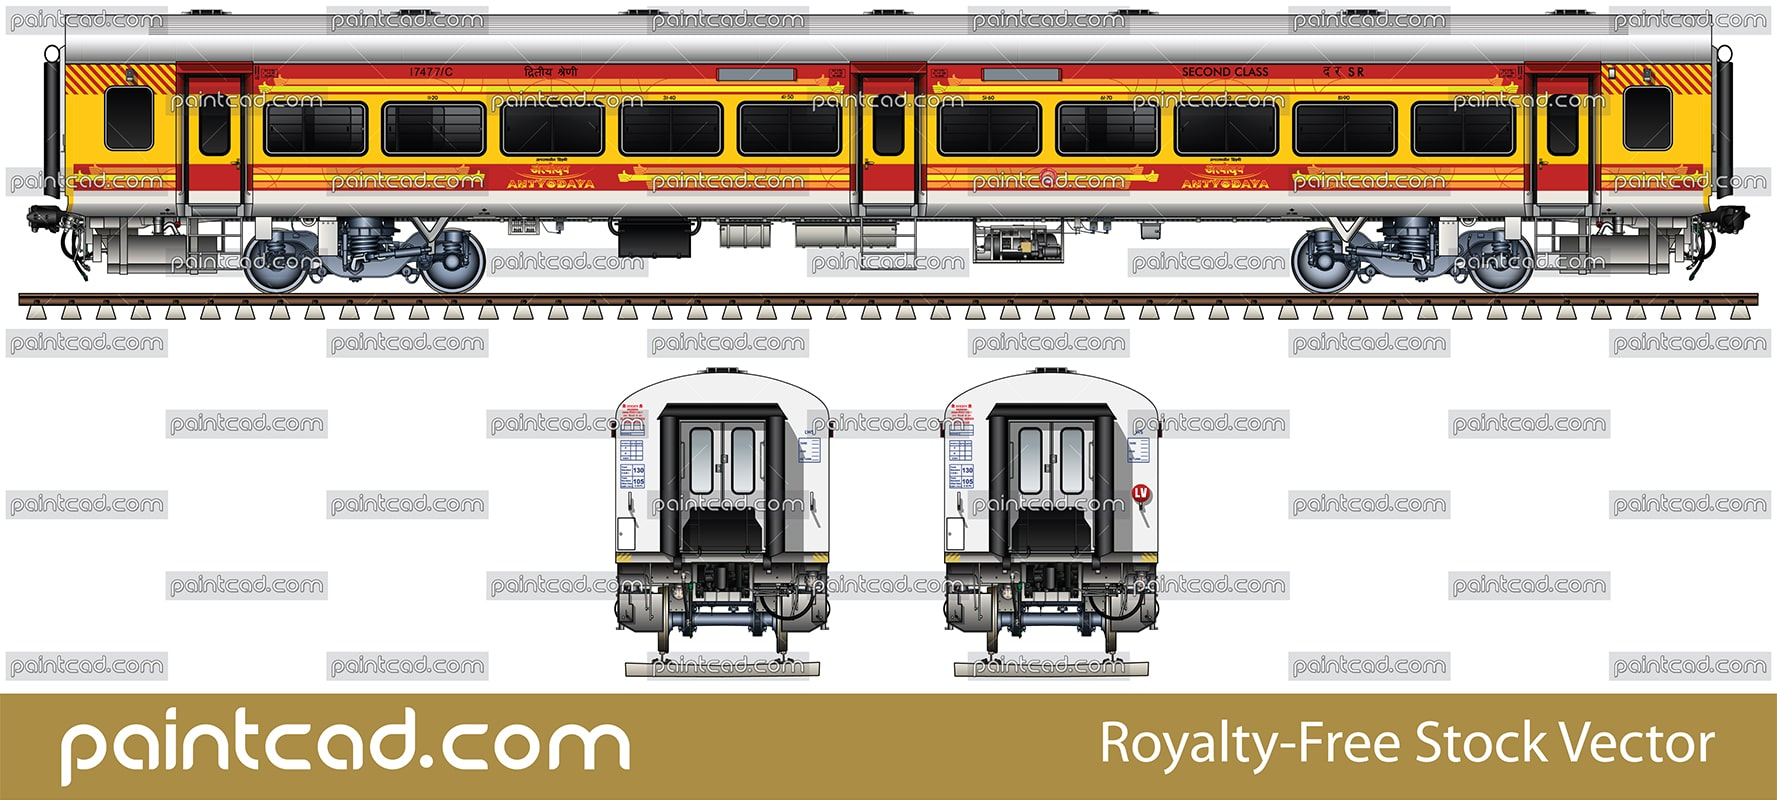 New LHB car with blacked windows used by Antyodaya express - vector illustration